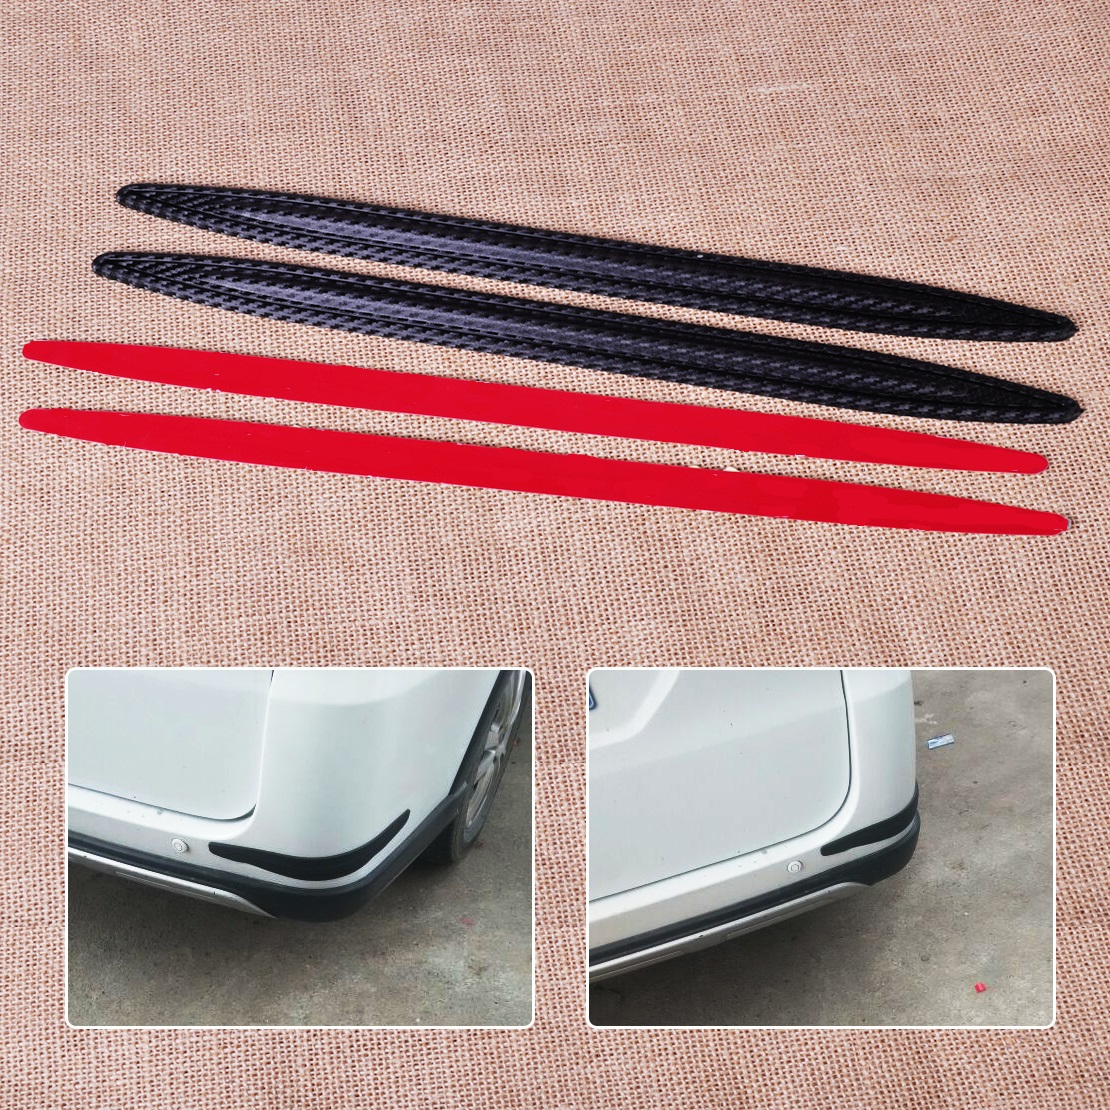 CITALL Car SUV Auto Pickup 2pcs Carbon Fiber Rubber Front Rear Bumper Edge Protector Corner Guard Anti-rub Scratch Sticker protective pvc car bumper guard protector sticker white 2 pcs